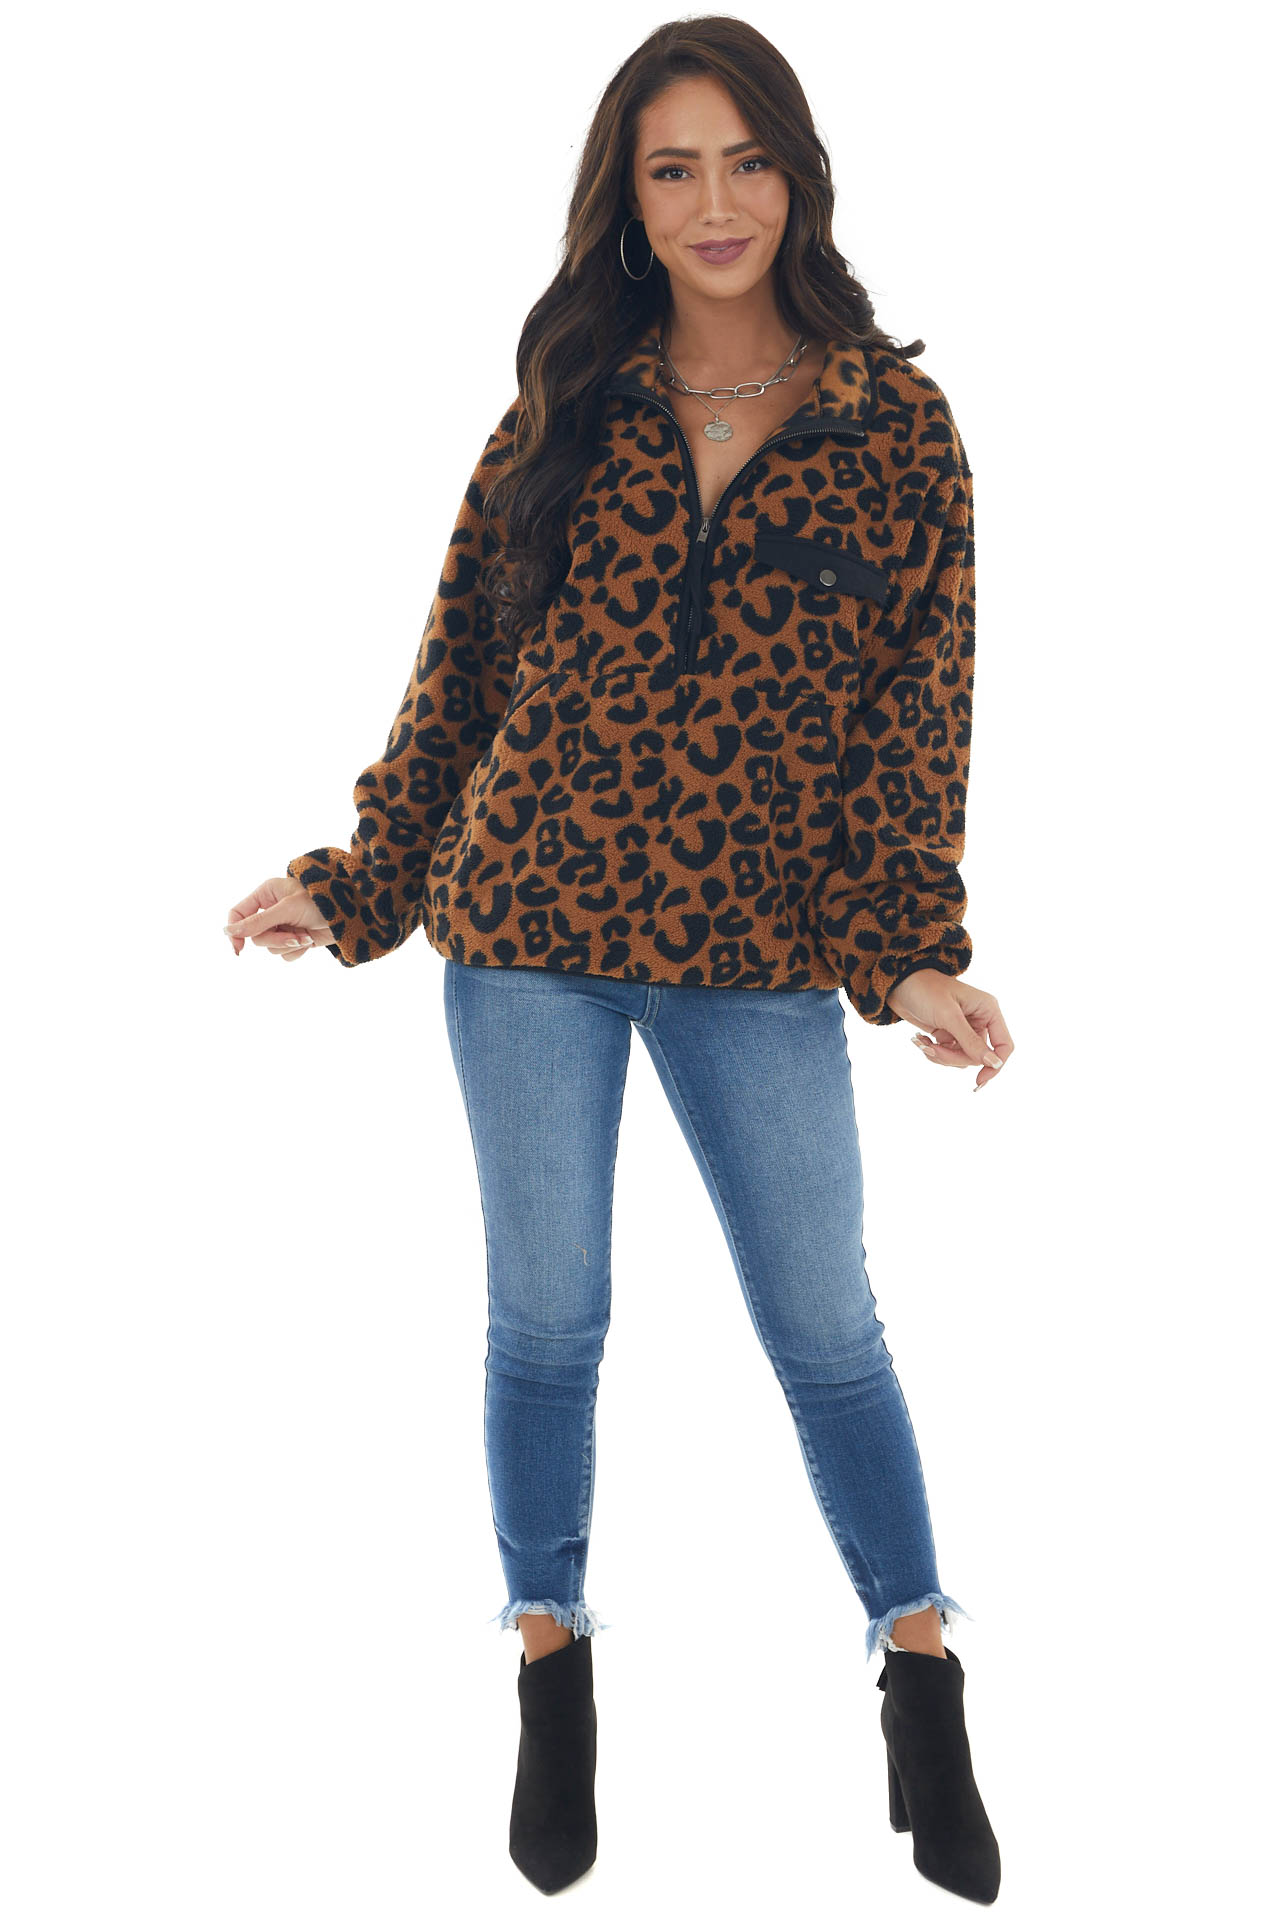 Sepia and Black Leopard Print Pullover Jacket